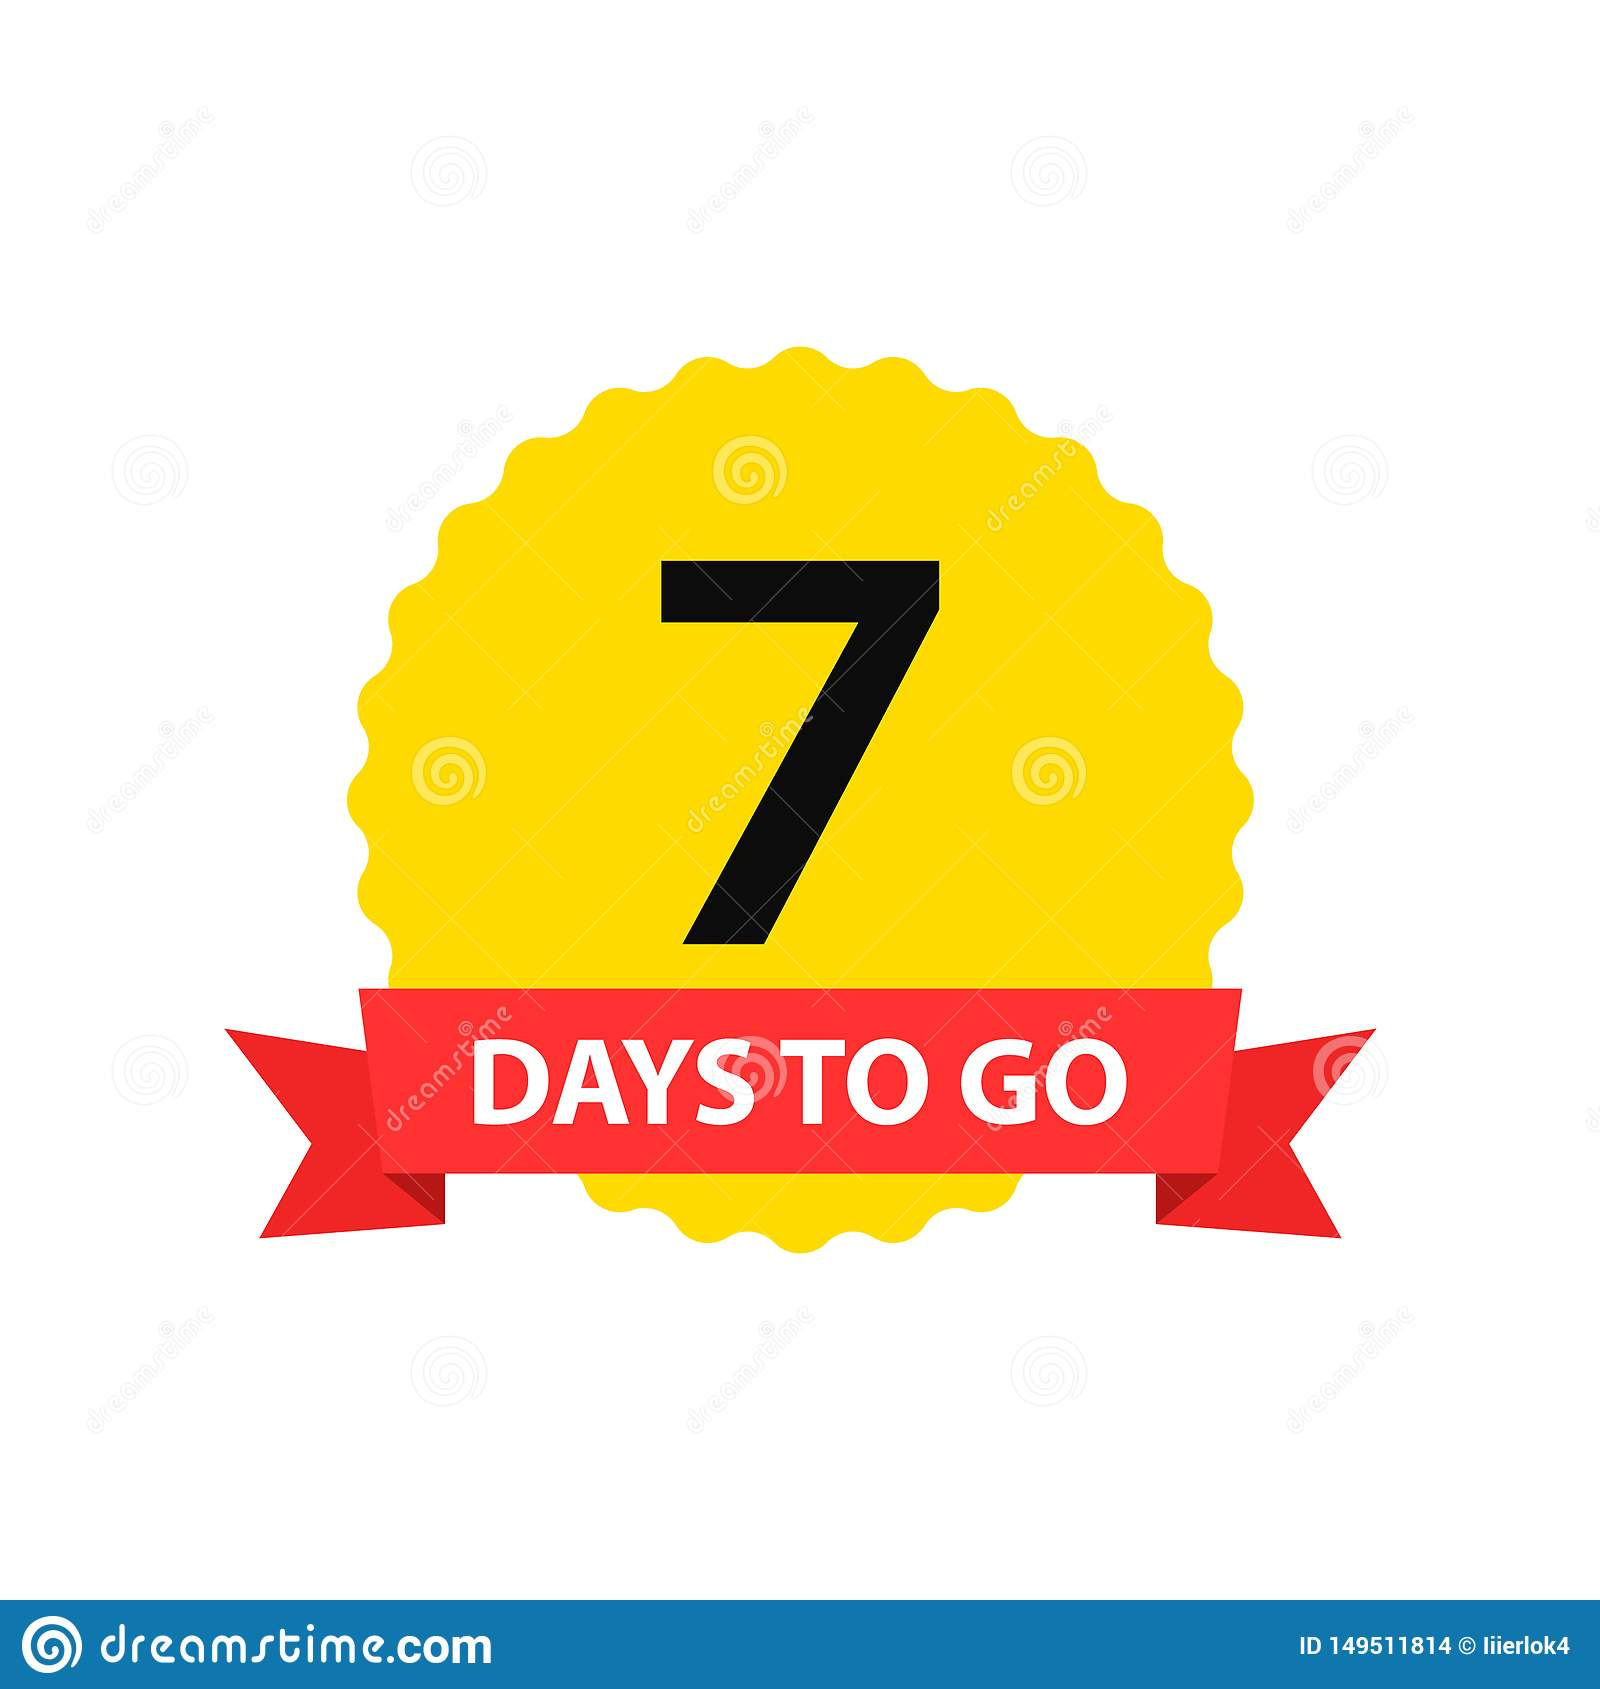 Number 7 of days to go. Collection badges sale, landing page, banner.Vector illustration